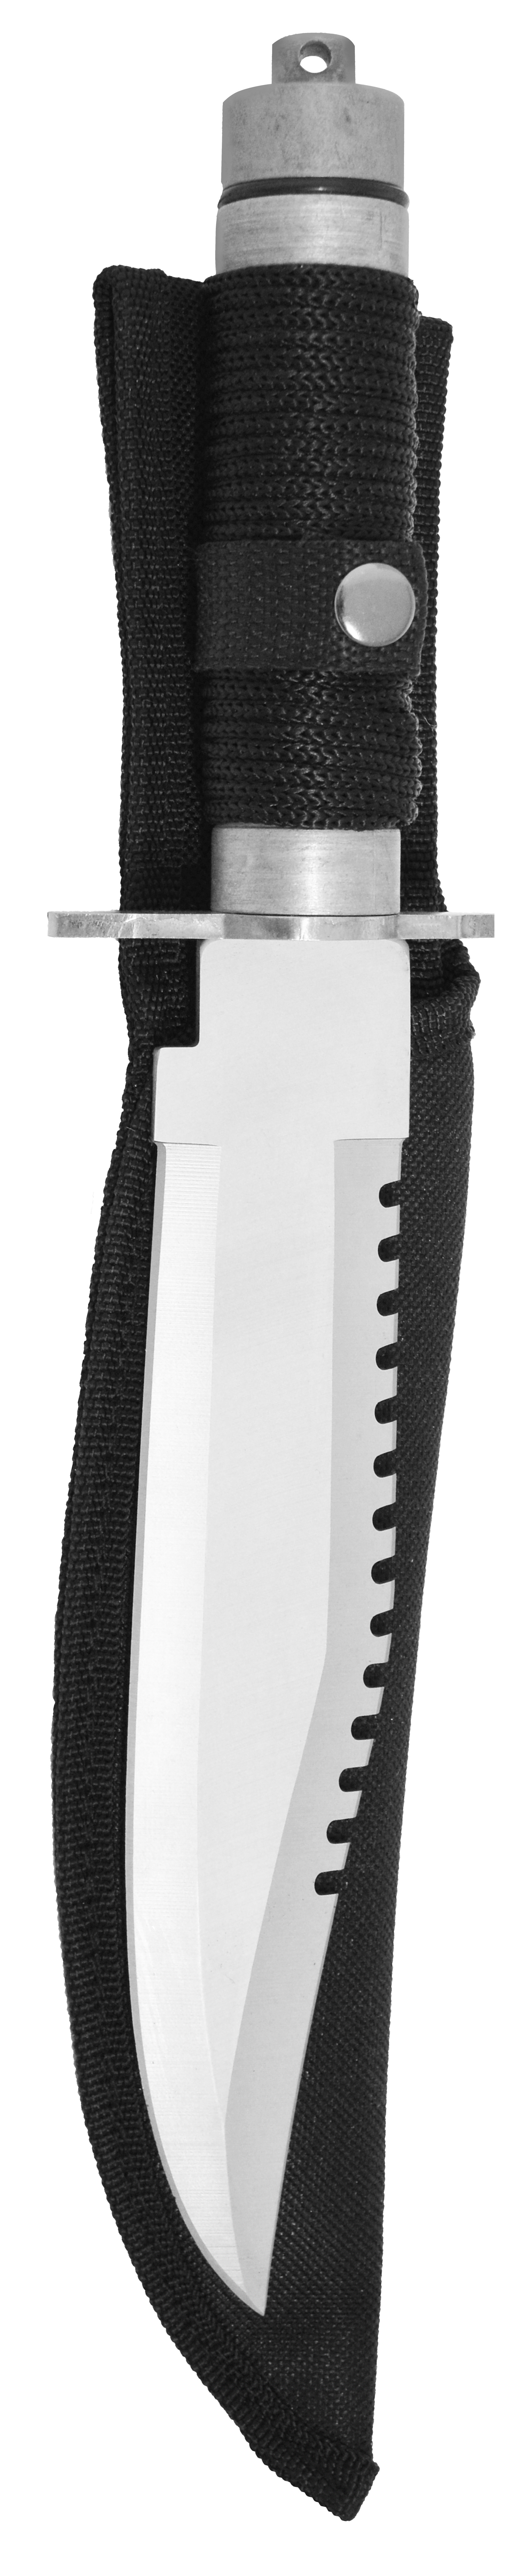 Zenport Survival Knife 14036 Hunting Survival Knife, 8-Inch Stainless Steel Blade, Paracord Grip, Compass, Nylon Sheath